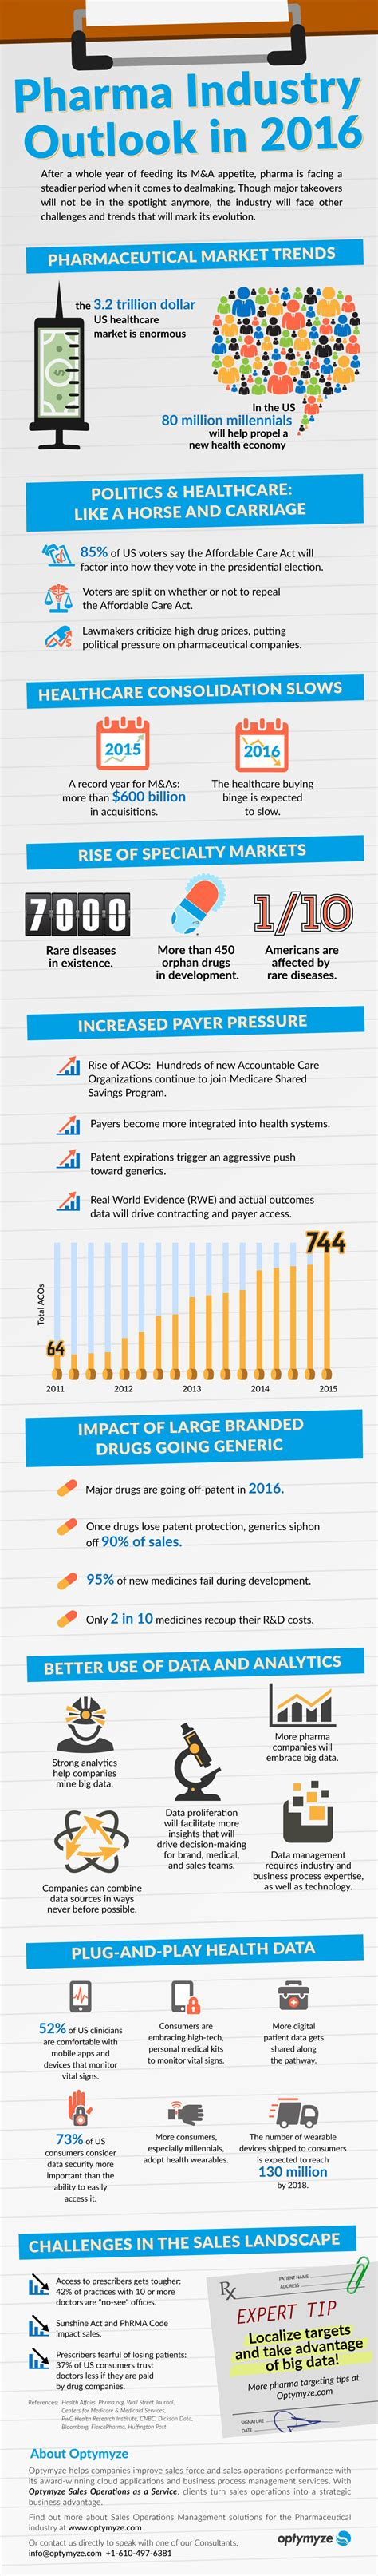 pharmaceutical industry outlook 2016 trends infographic optymyze